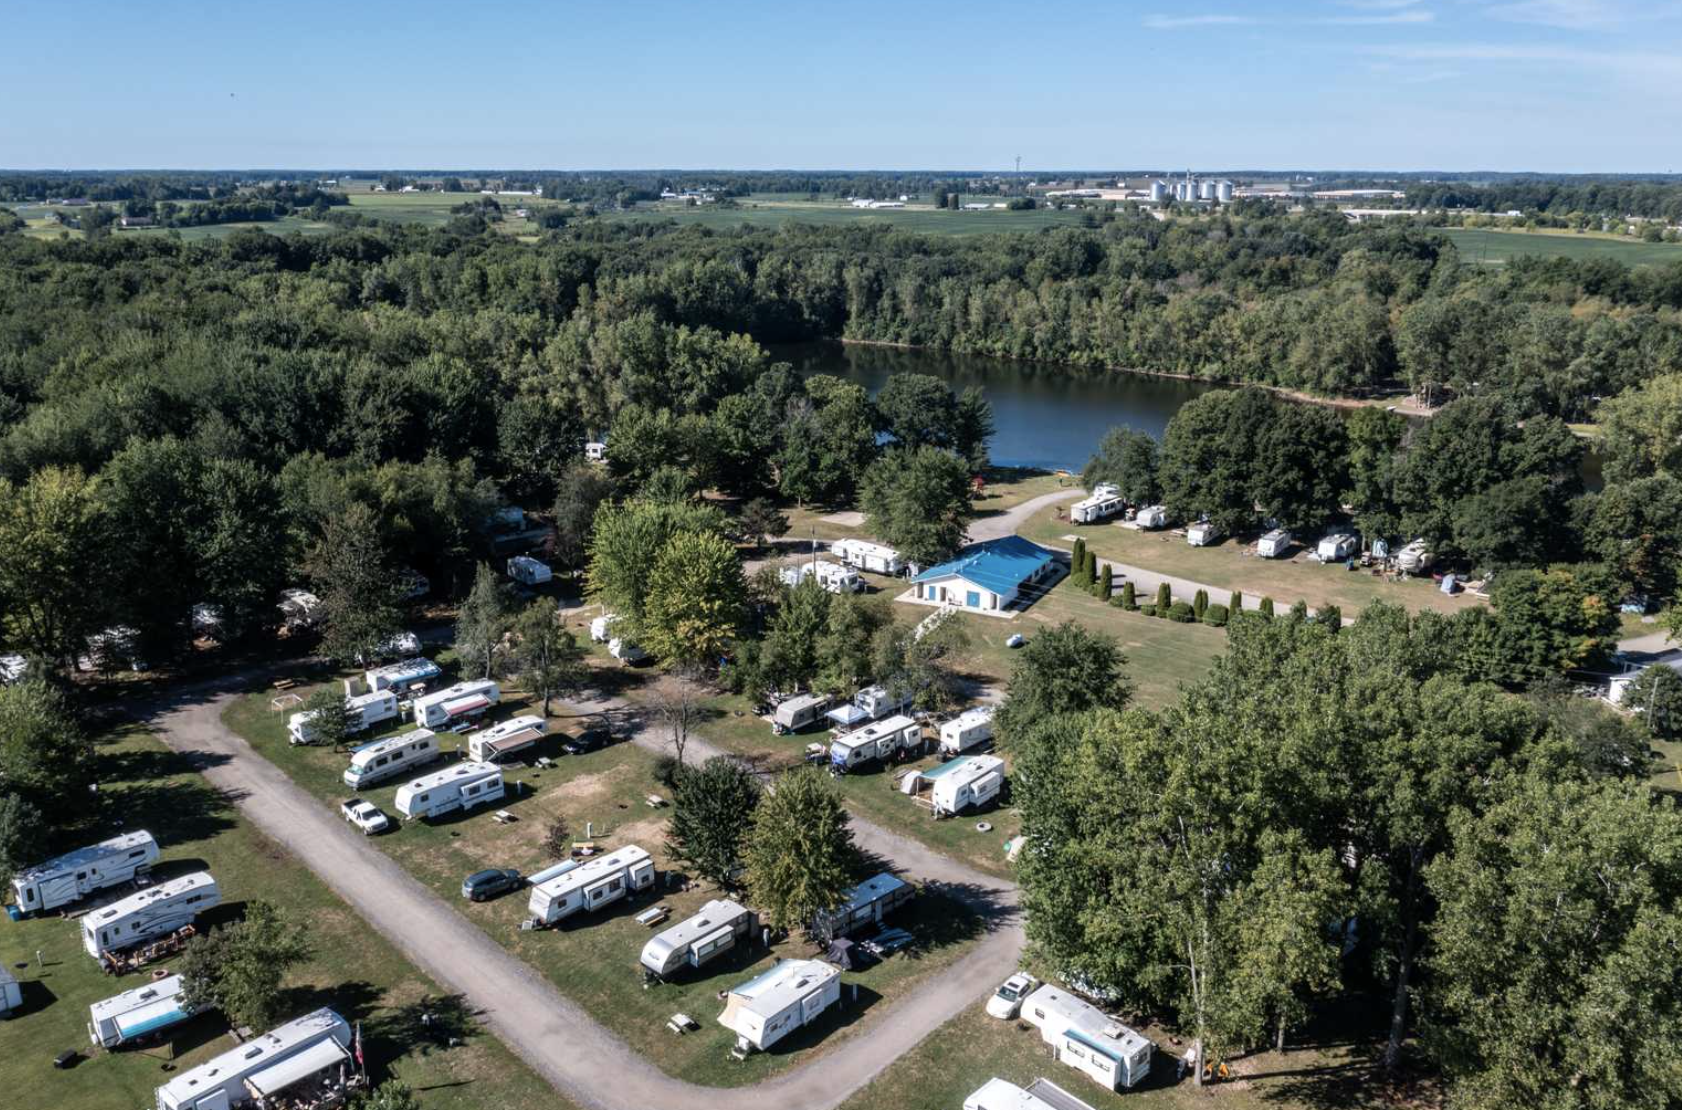 aerial view of campground with RVs parked and body of water